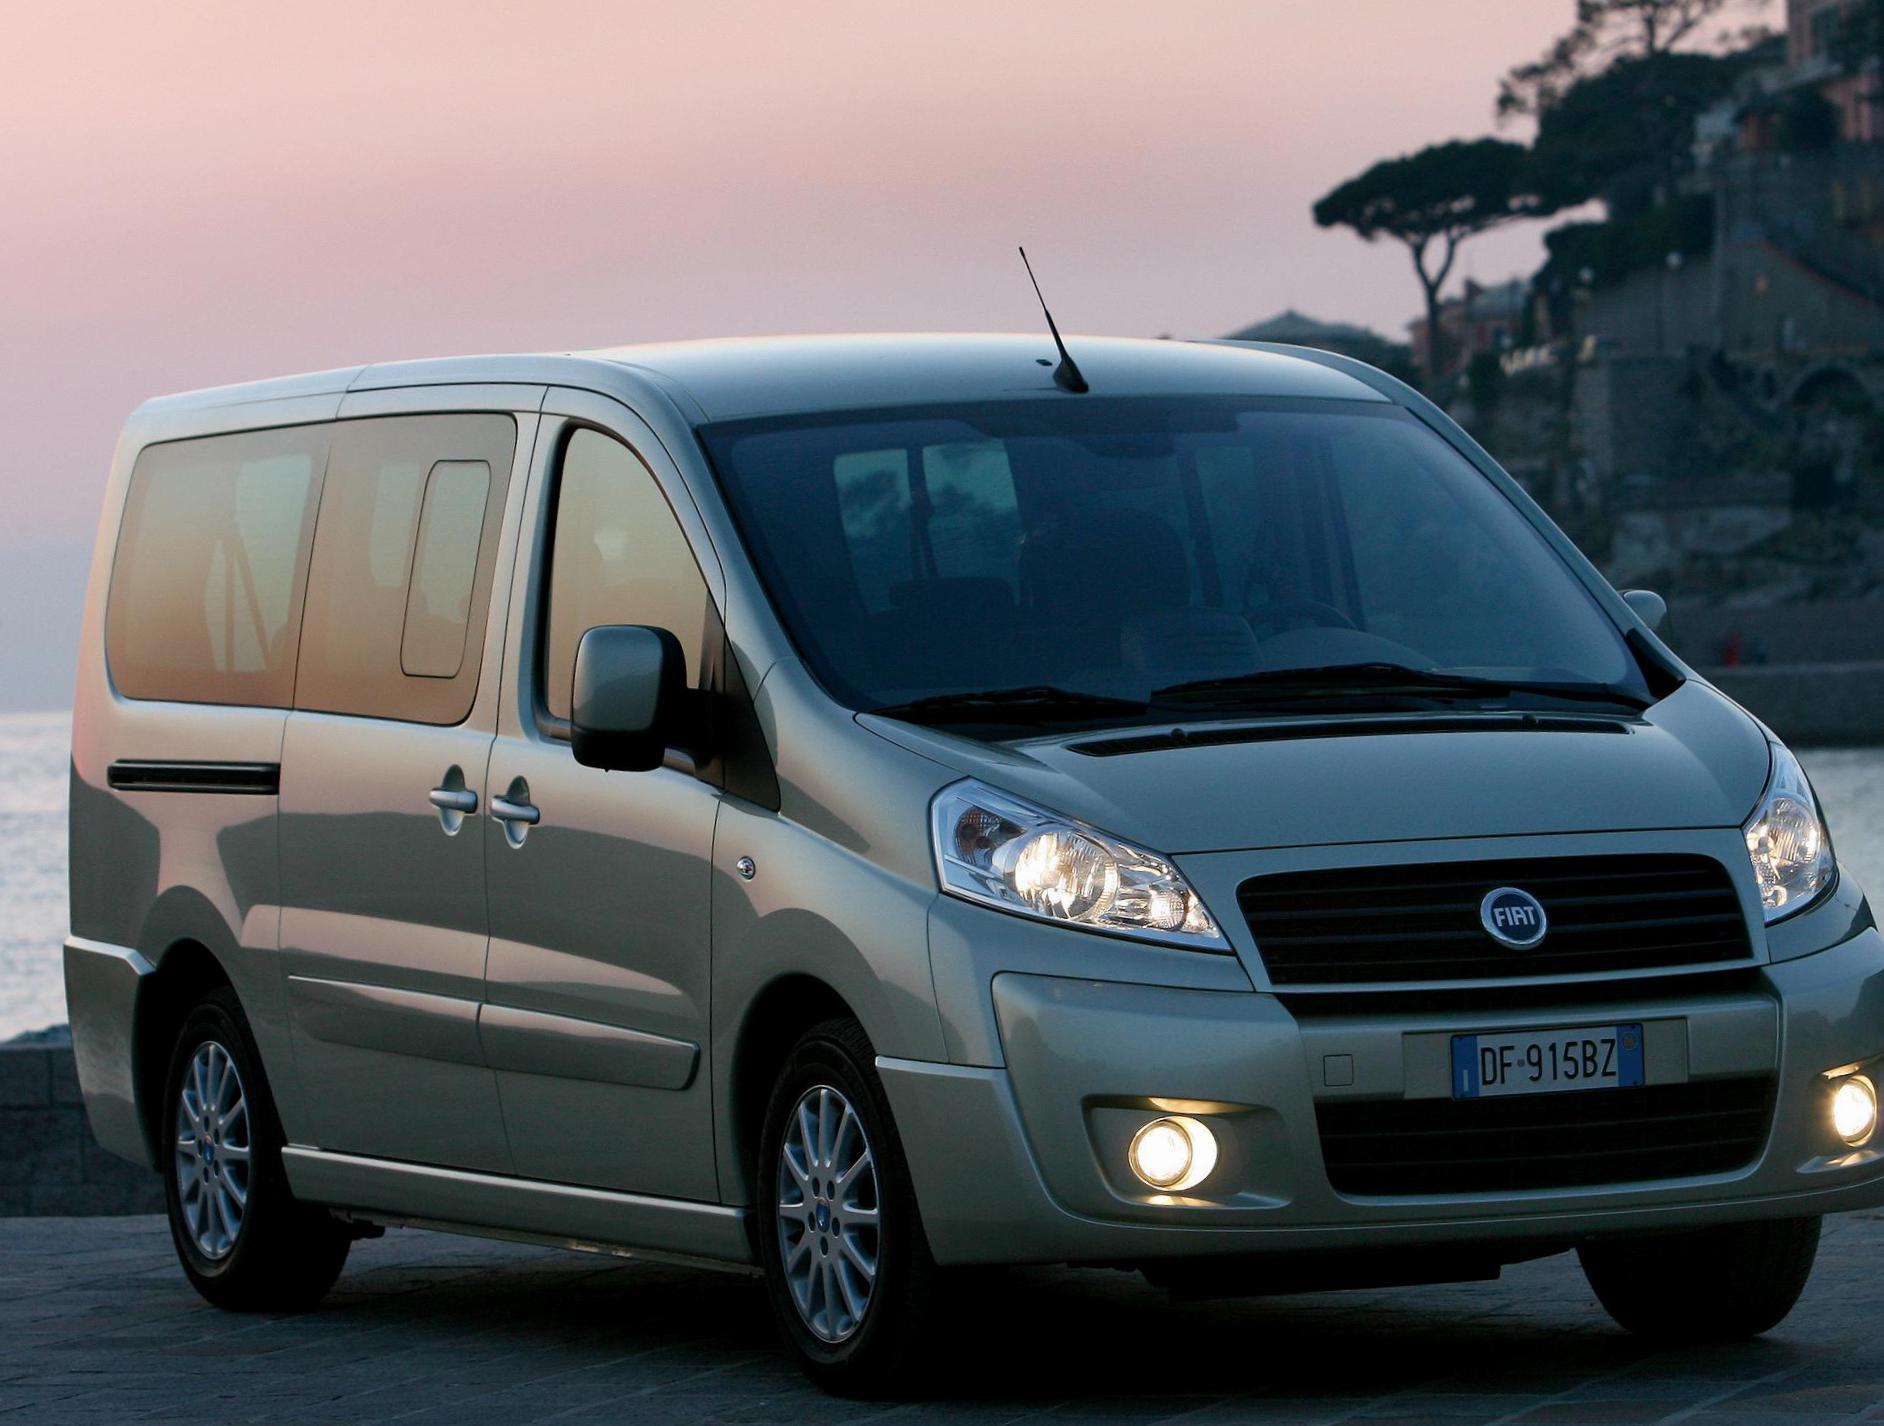 Scudo Panorama Fiat Specification 2010